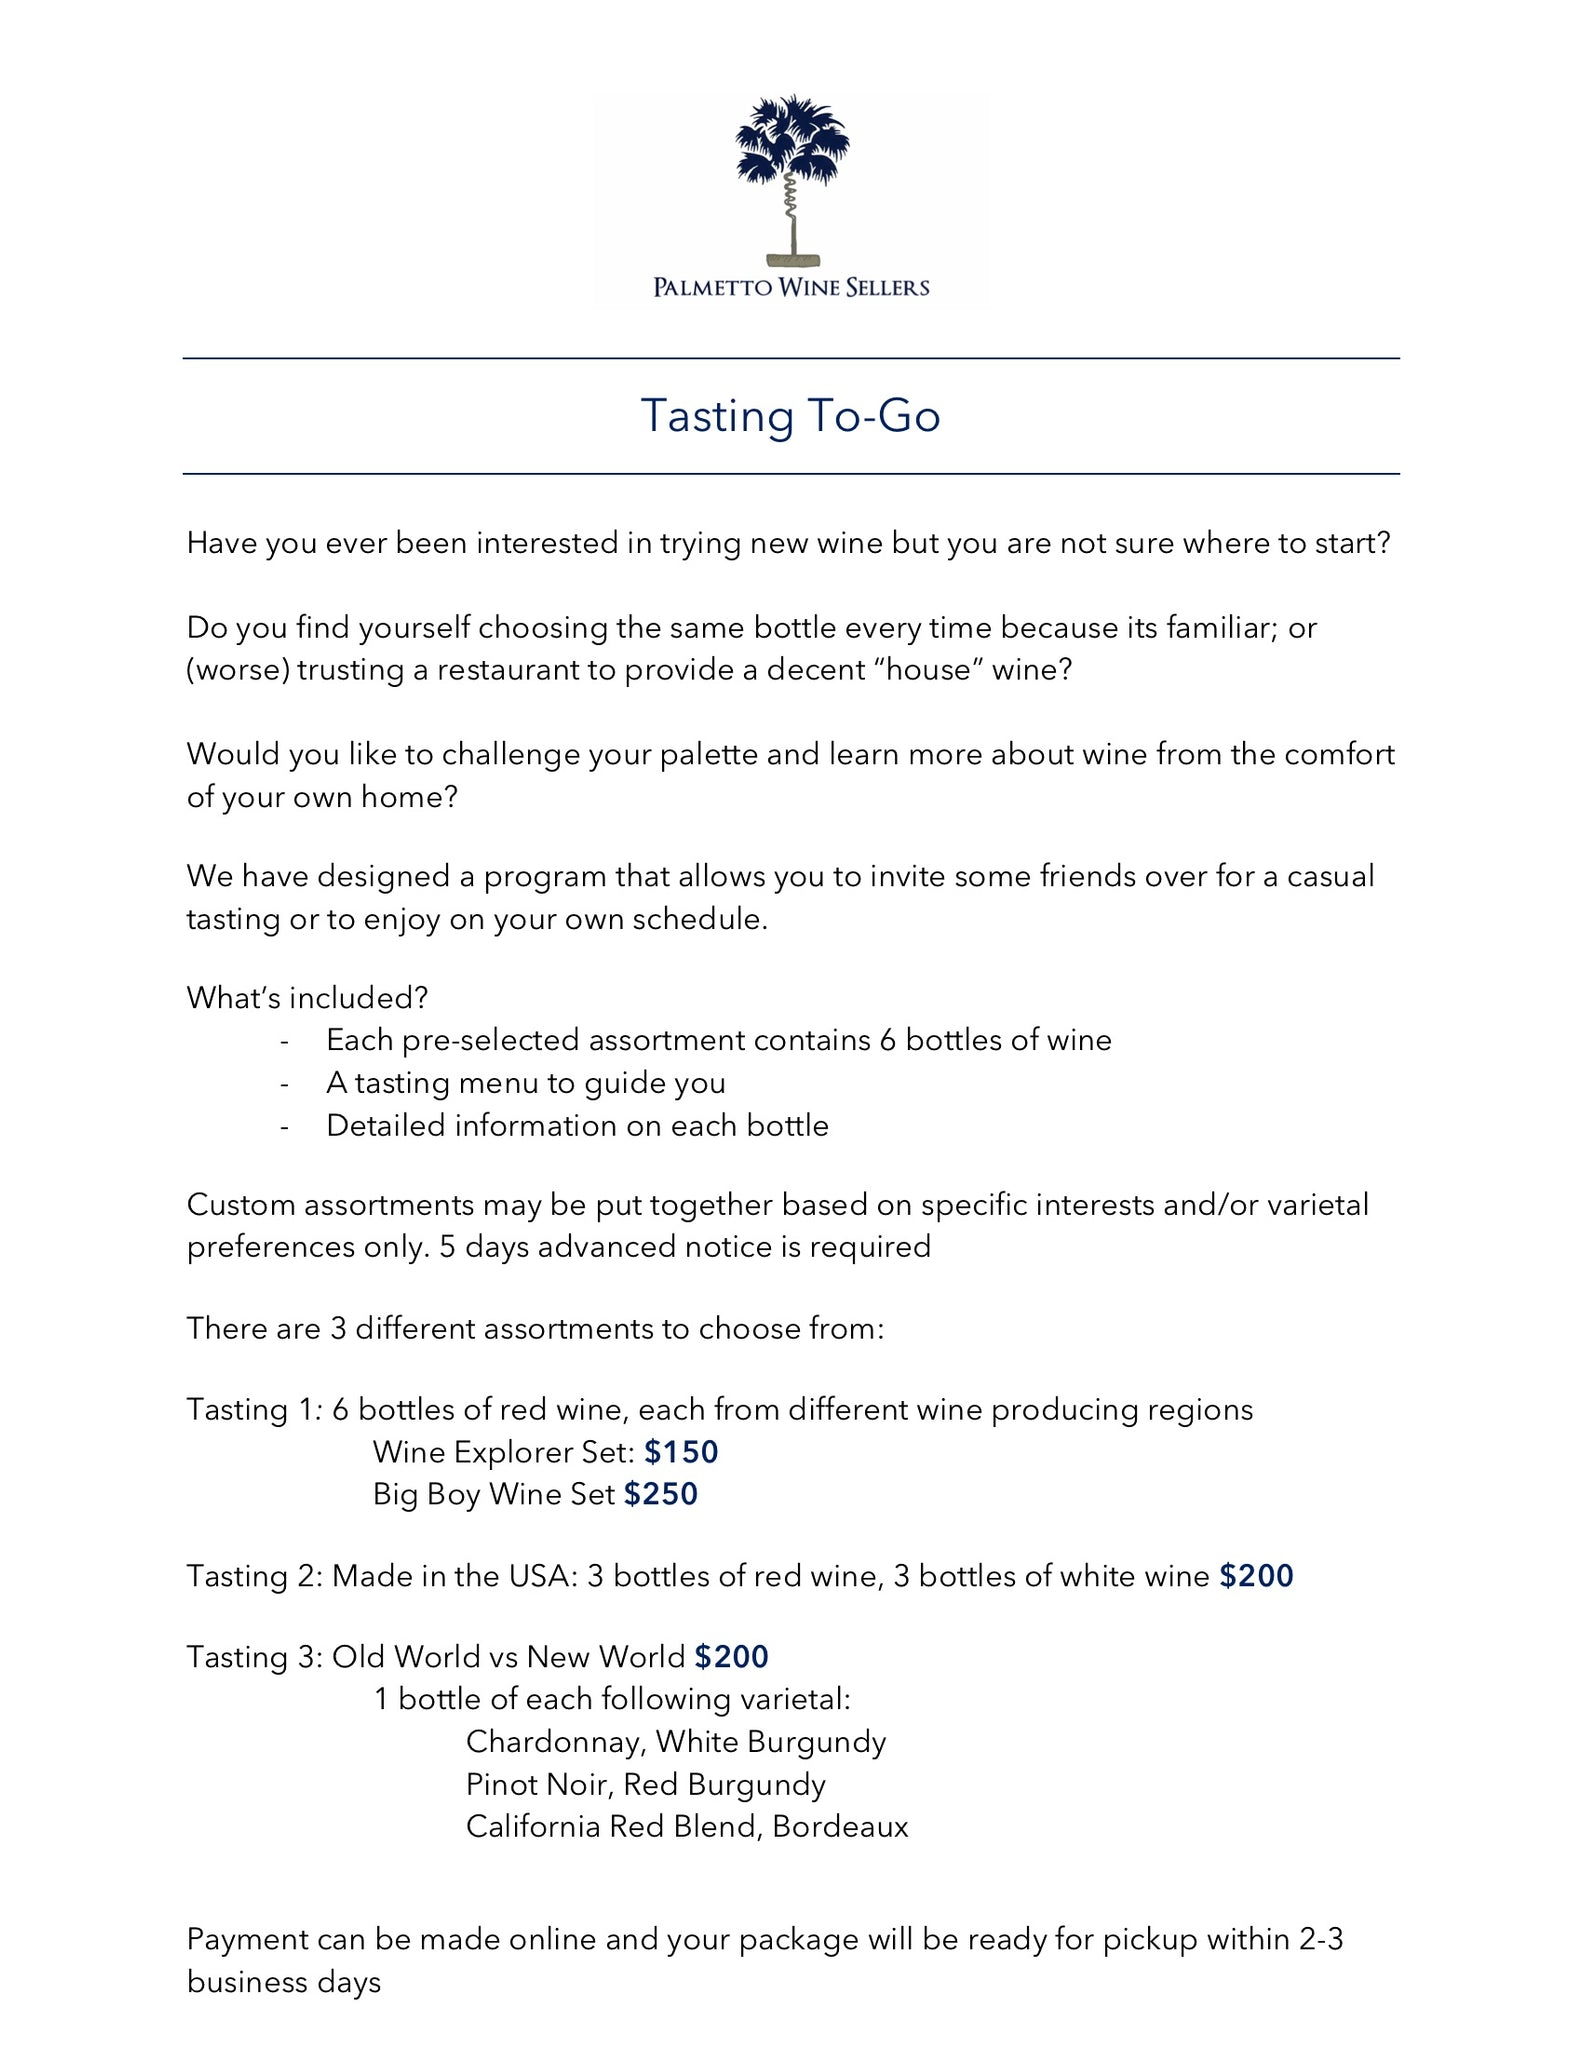 Tasting To-Go program details